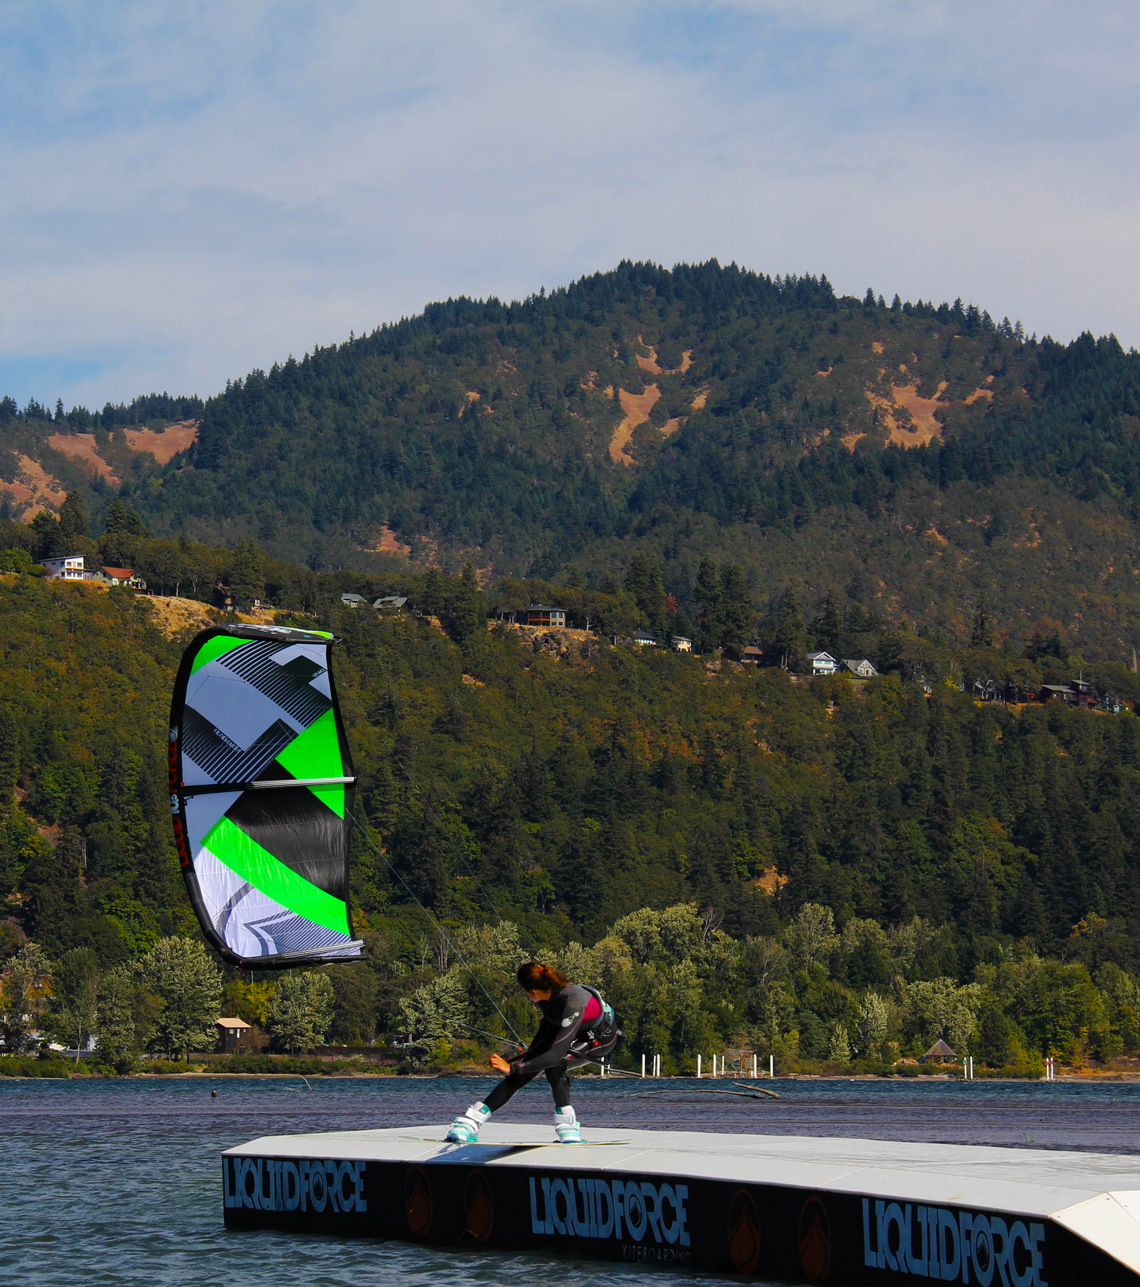 Sensi Graves kiteboarding on the slider with her Liquid Force kite